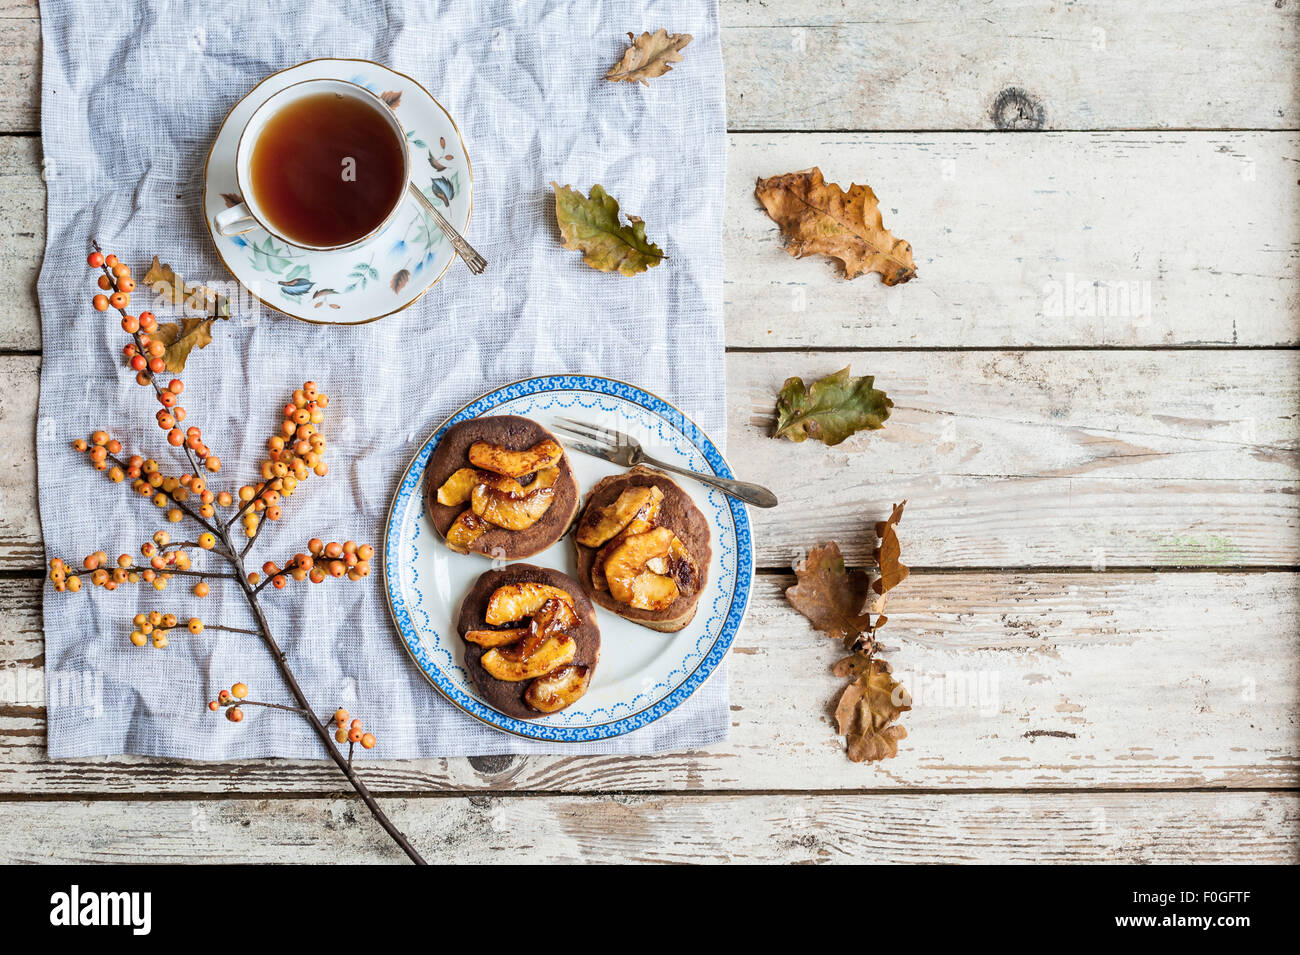 pancakes with caramelised apples on vintage plate, with tea in vintage teacup, oak leaves and ilex berries Stock Photo